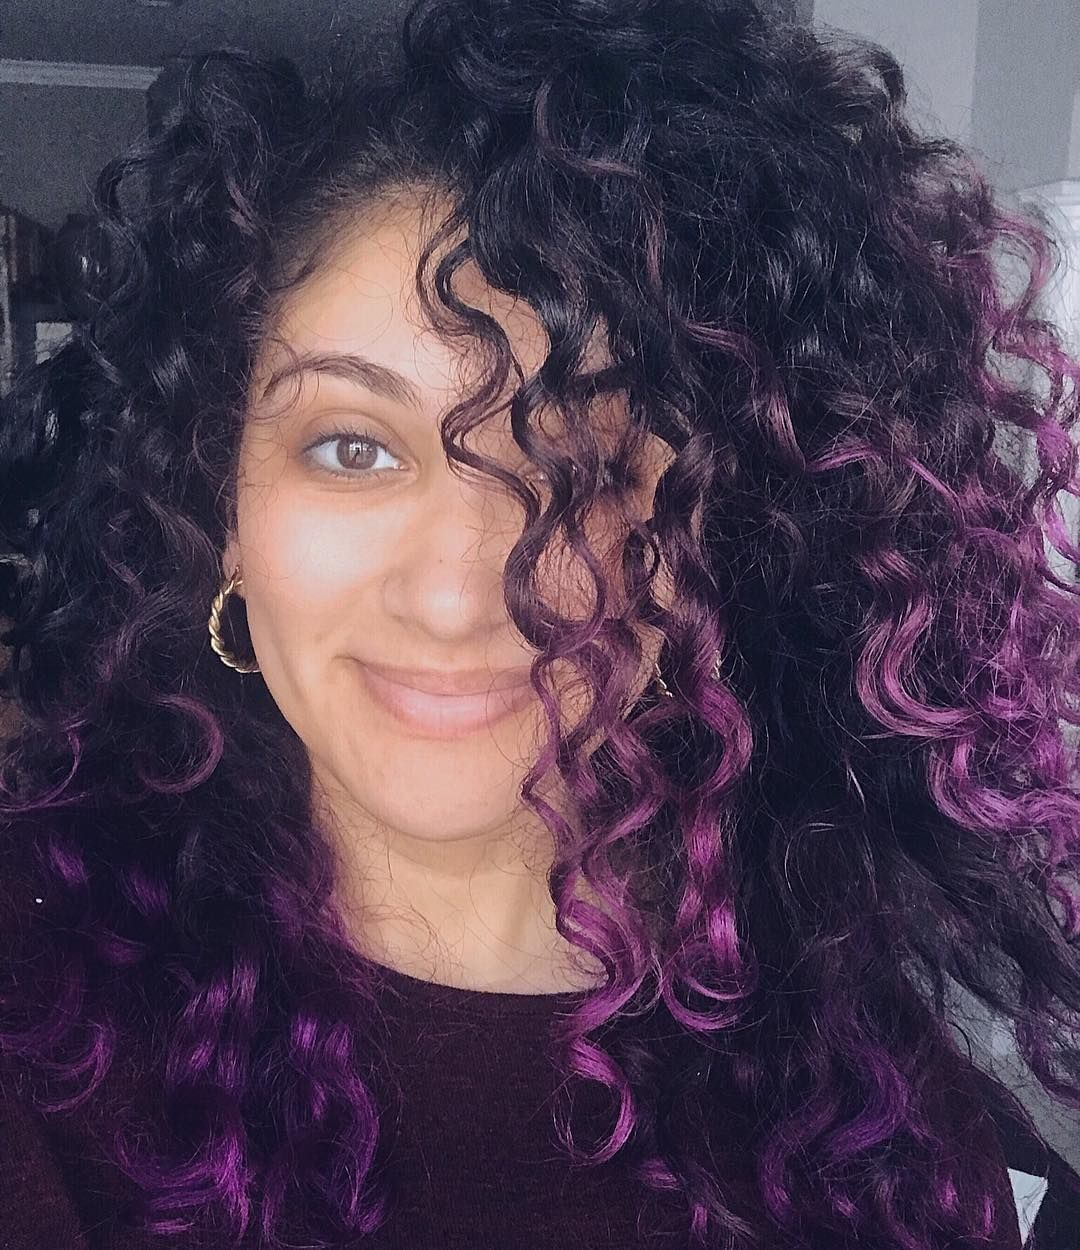 Pin By Maddie On Hair In 2020 Colored Curly Hair Highlights Curly Hair Colored Hair Tips